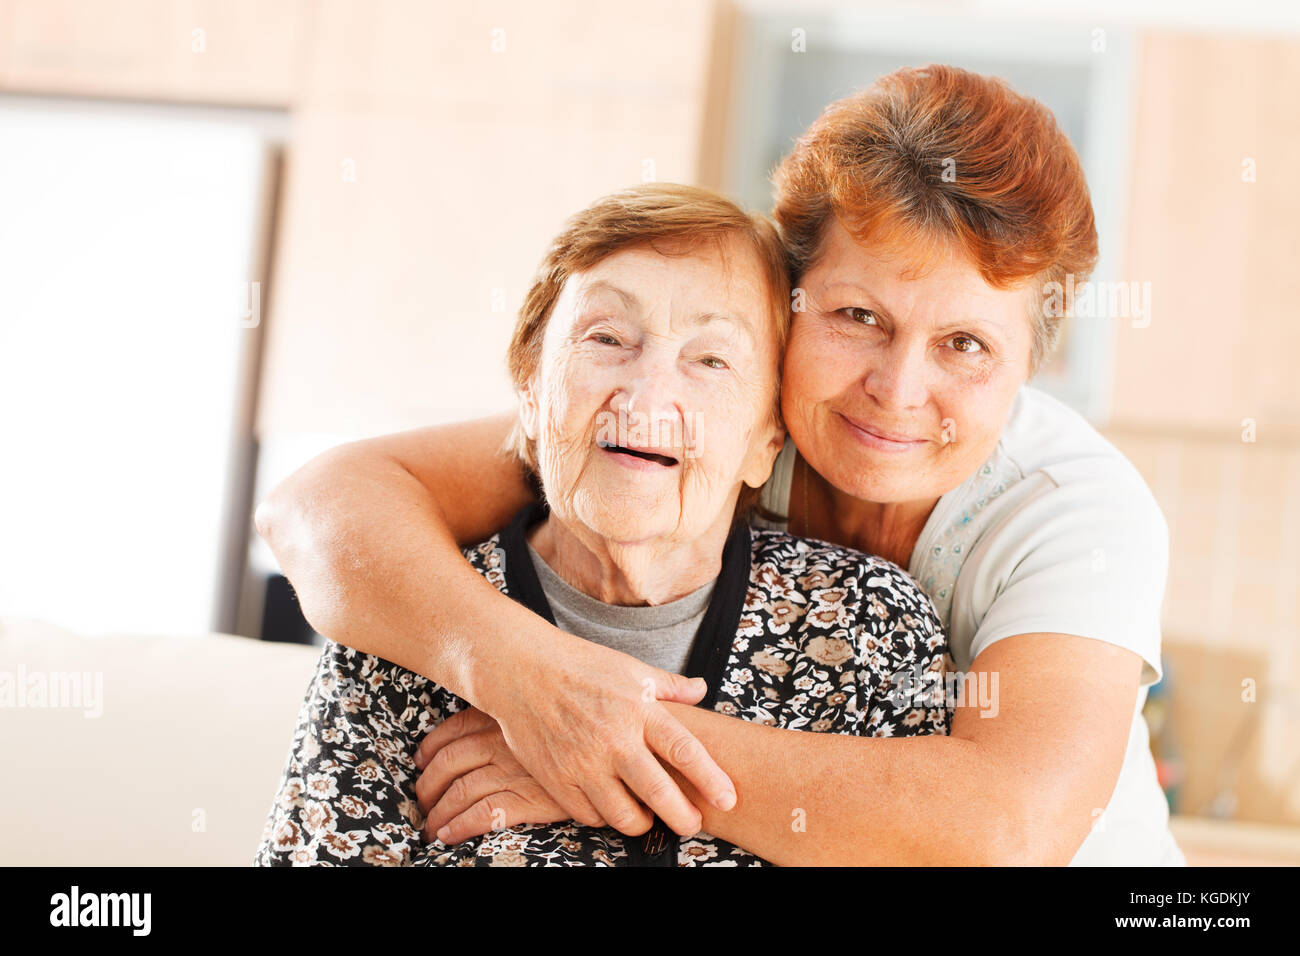 Mother and daughter hugging each other - Stock Image